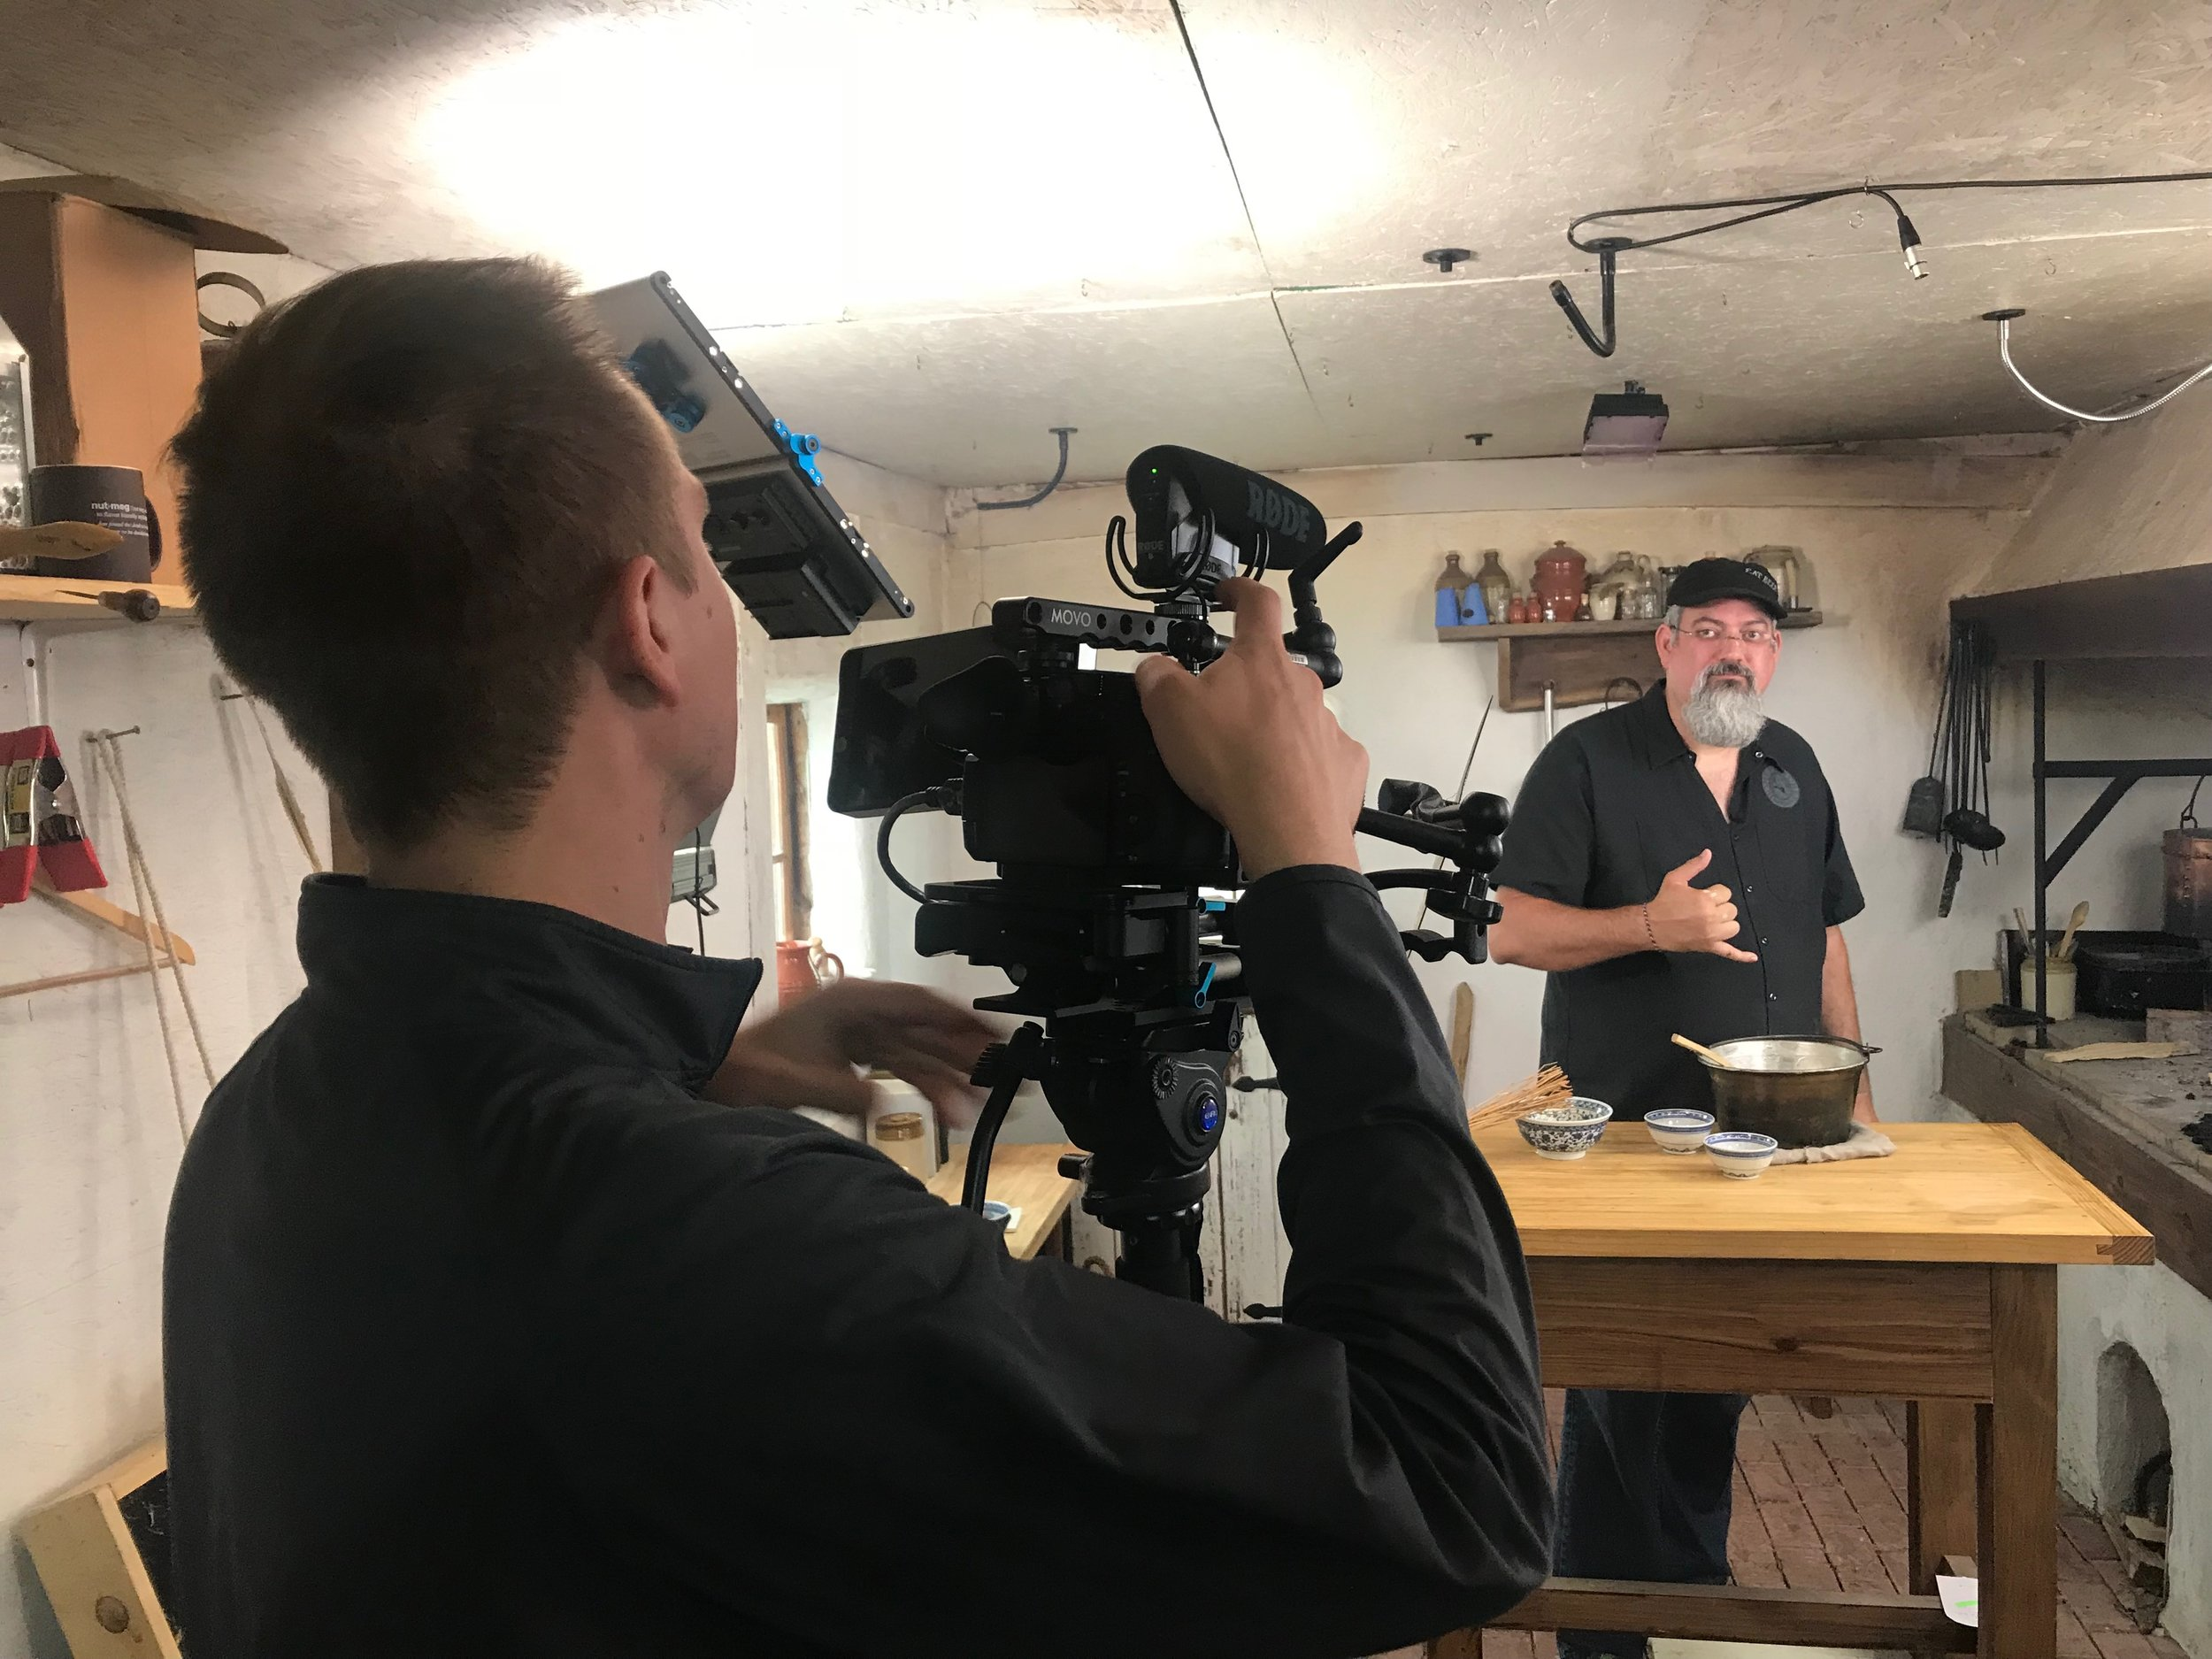 Chef Sean Z. Paxton in between takes and tastes while on location in Indiana.